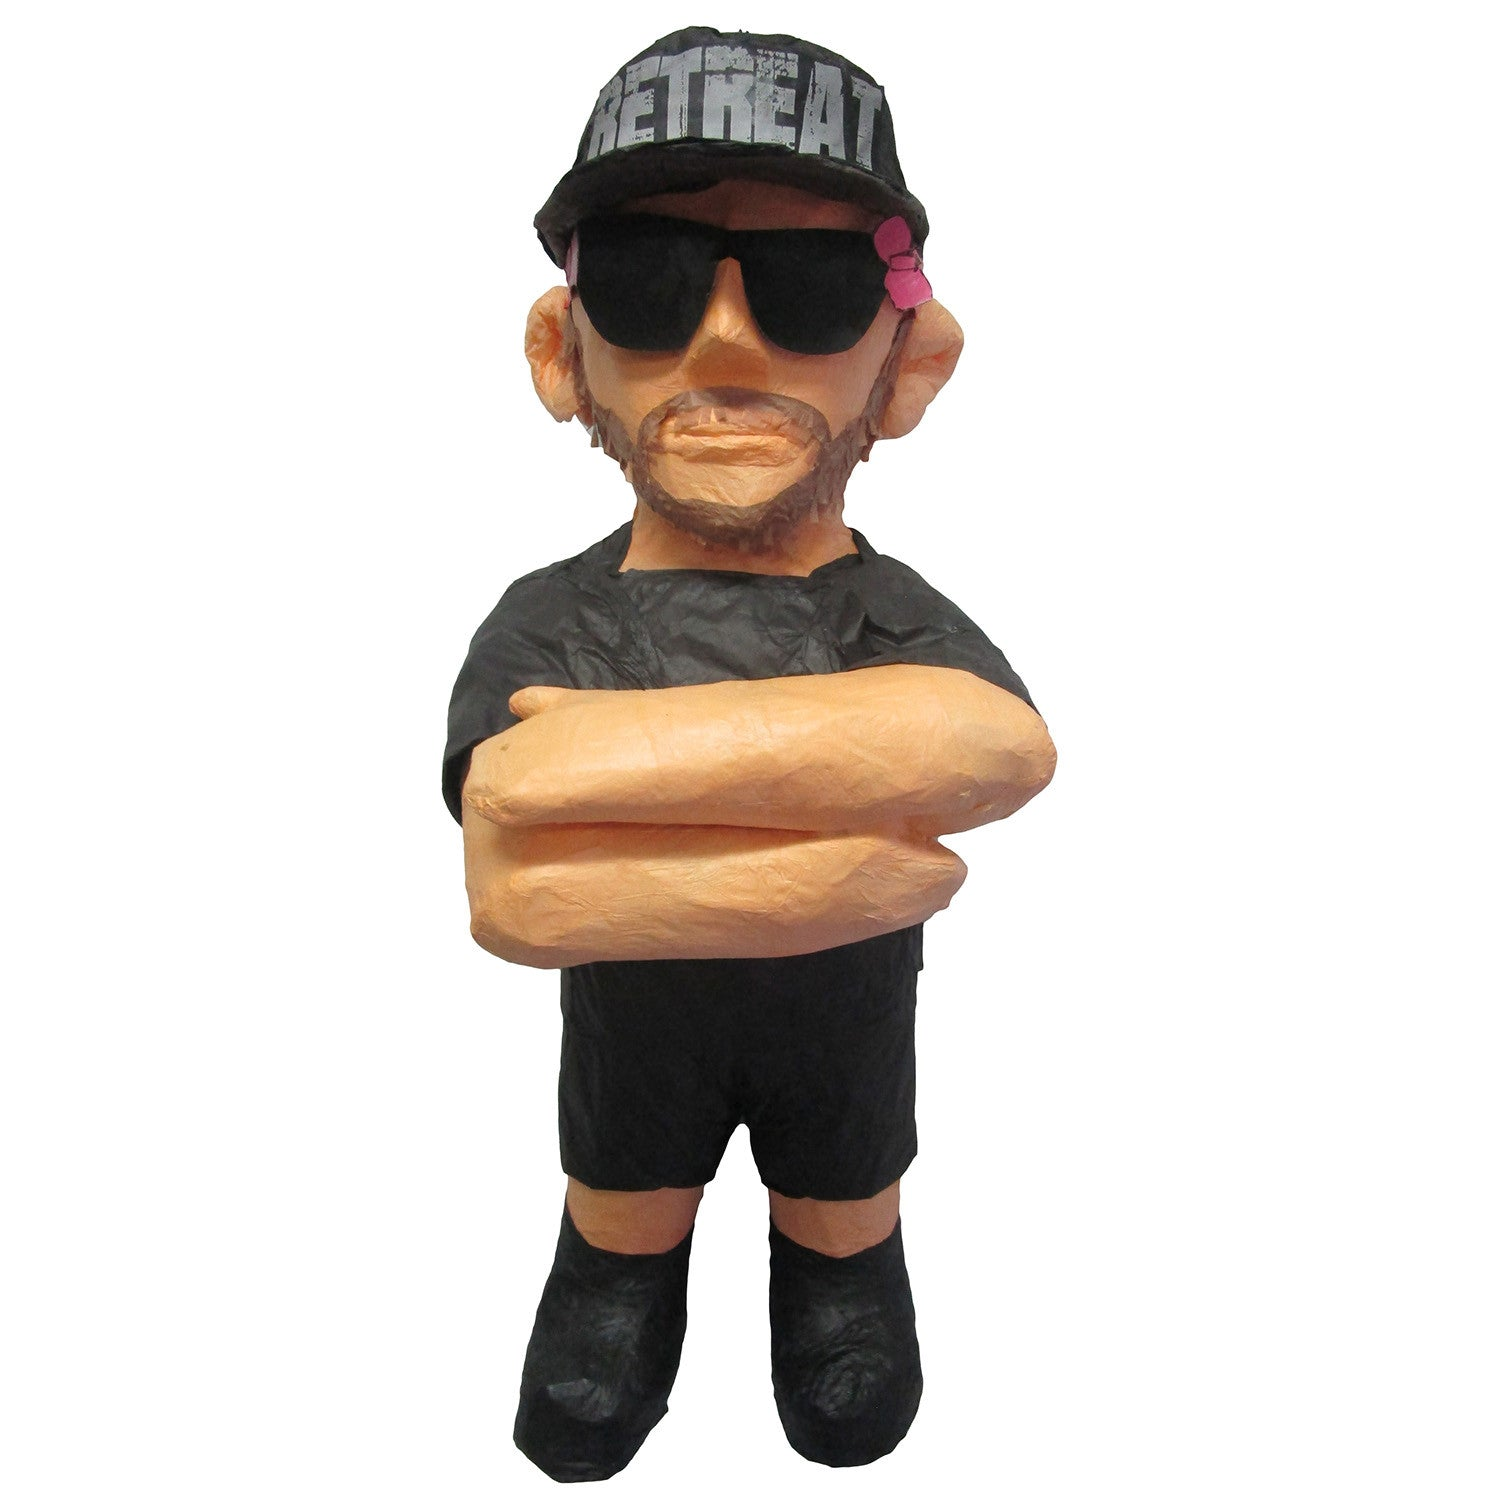 Man with Sunglasses Custom Pinata